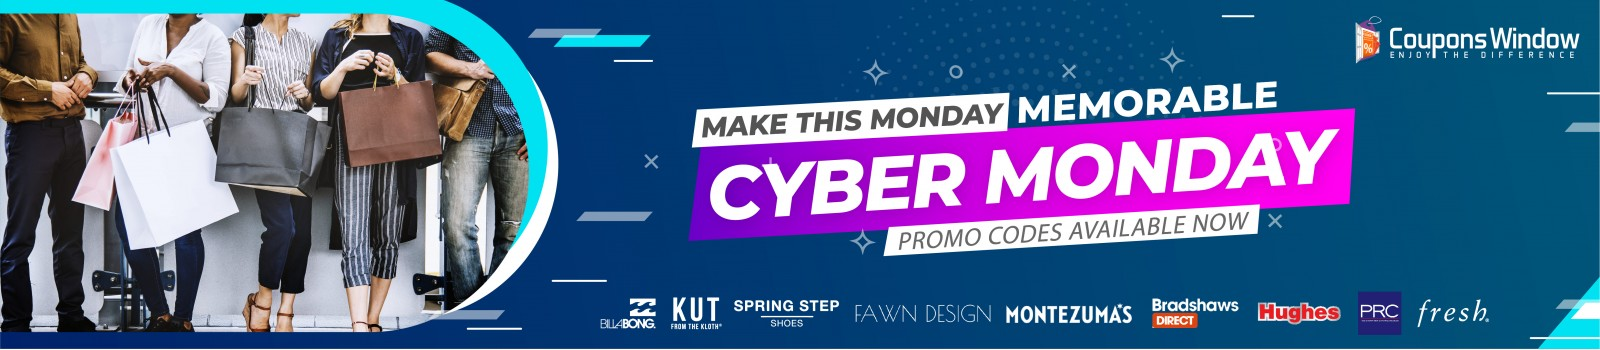 cyber-monday-coupons